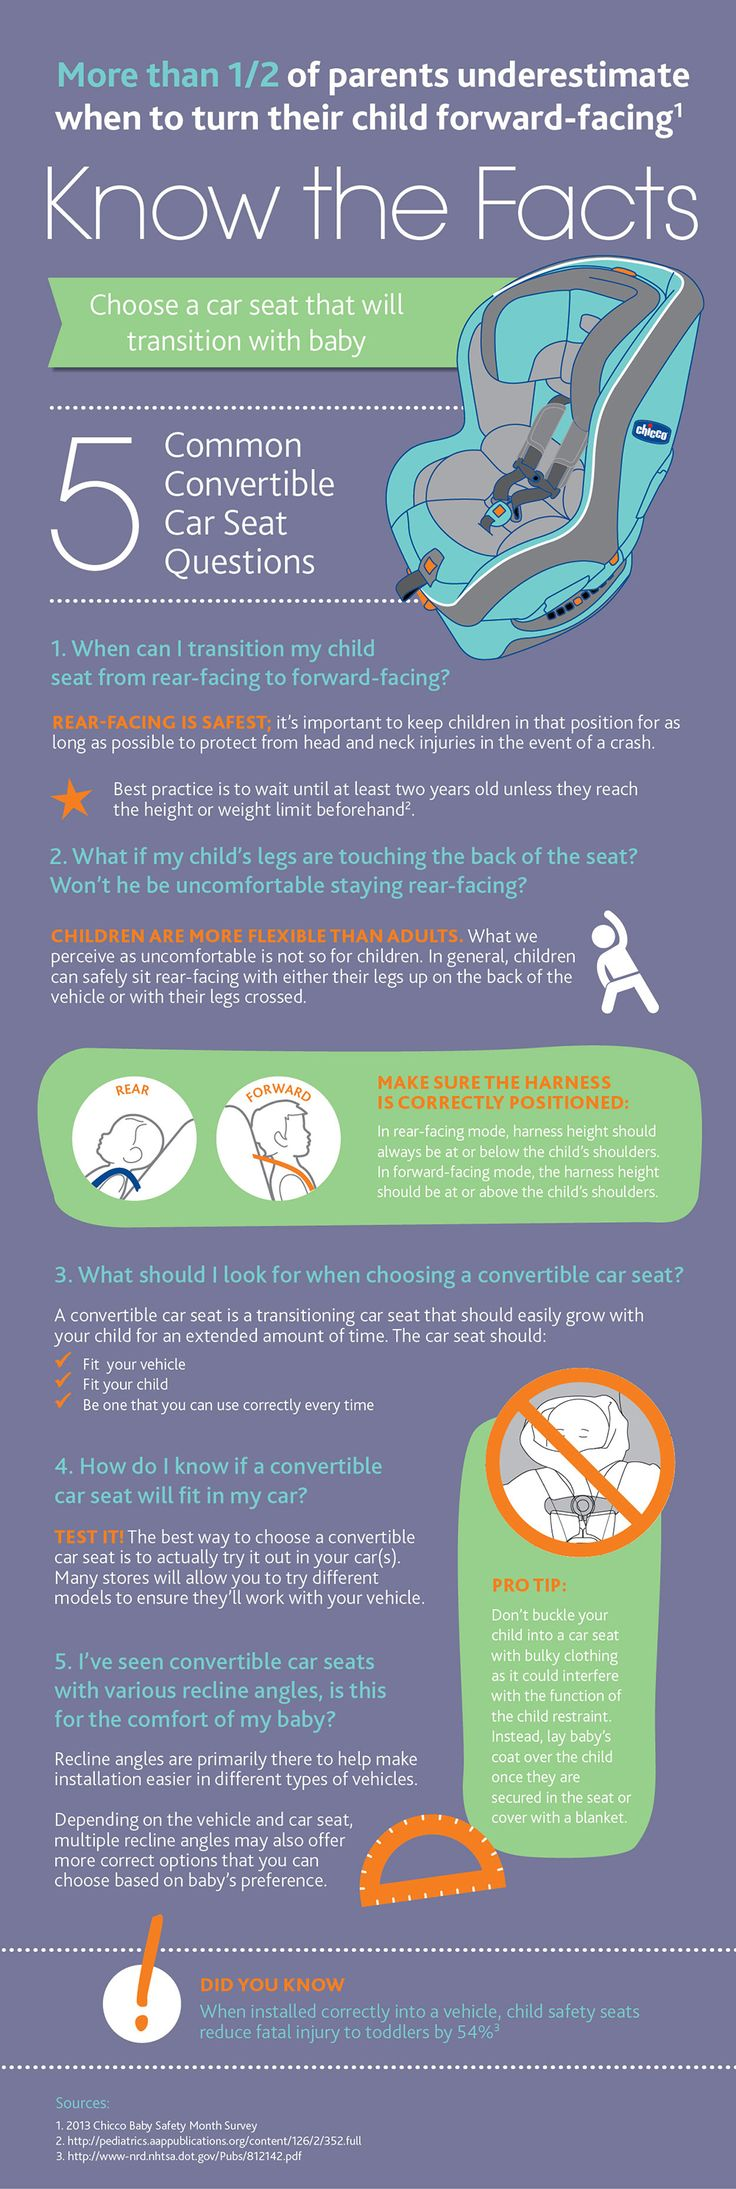 Infographic on Convertible Car Seat Safety - Know the Facts